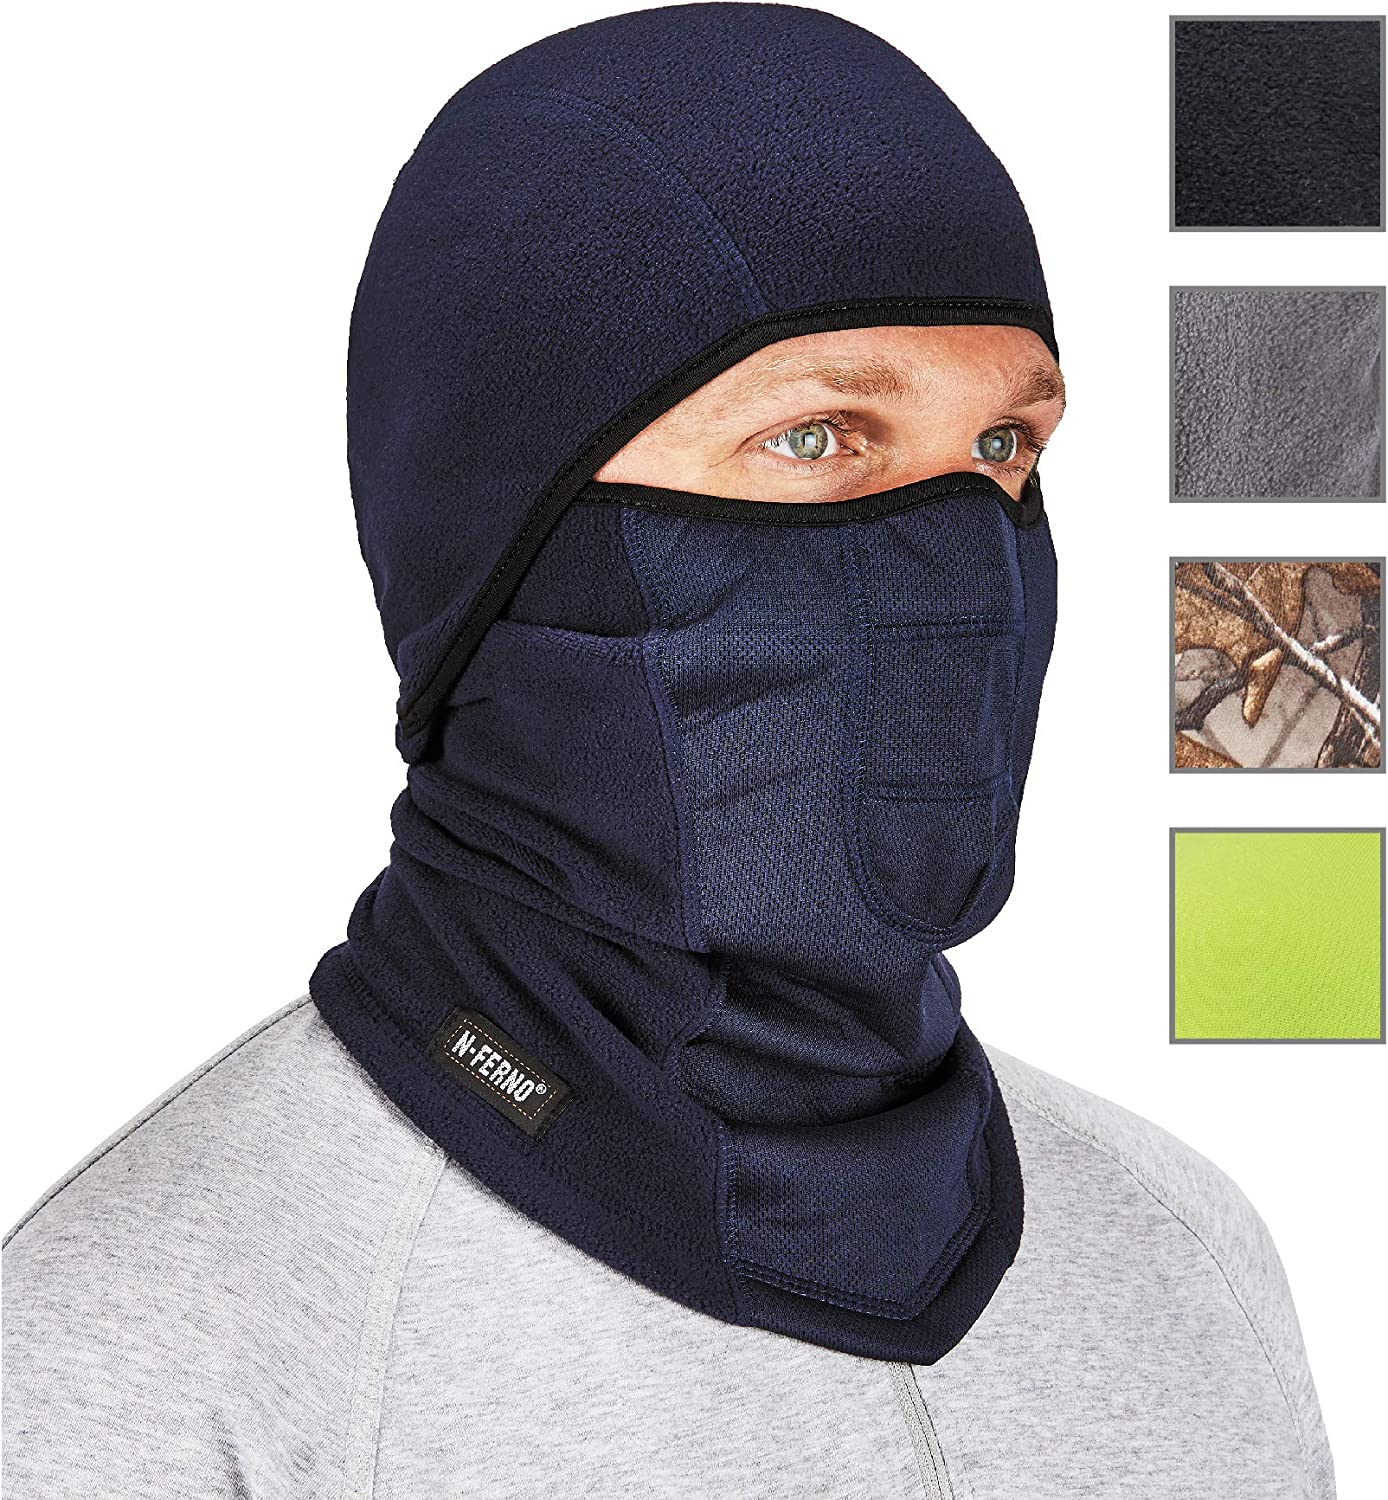 Wind-Resistant Face Mask/& Neck Gaiter,Balaclava Ski Masks,Breathable Tactical Hood,Windproof Face Warmer for Running,Motorcycling,Hiking-Ocean Blue and Green Mermaid Glamour Marble